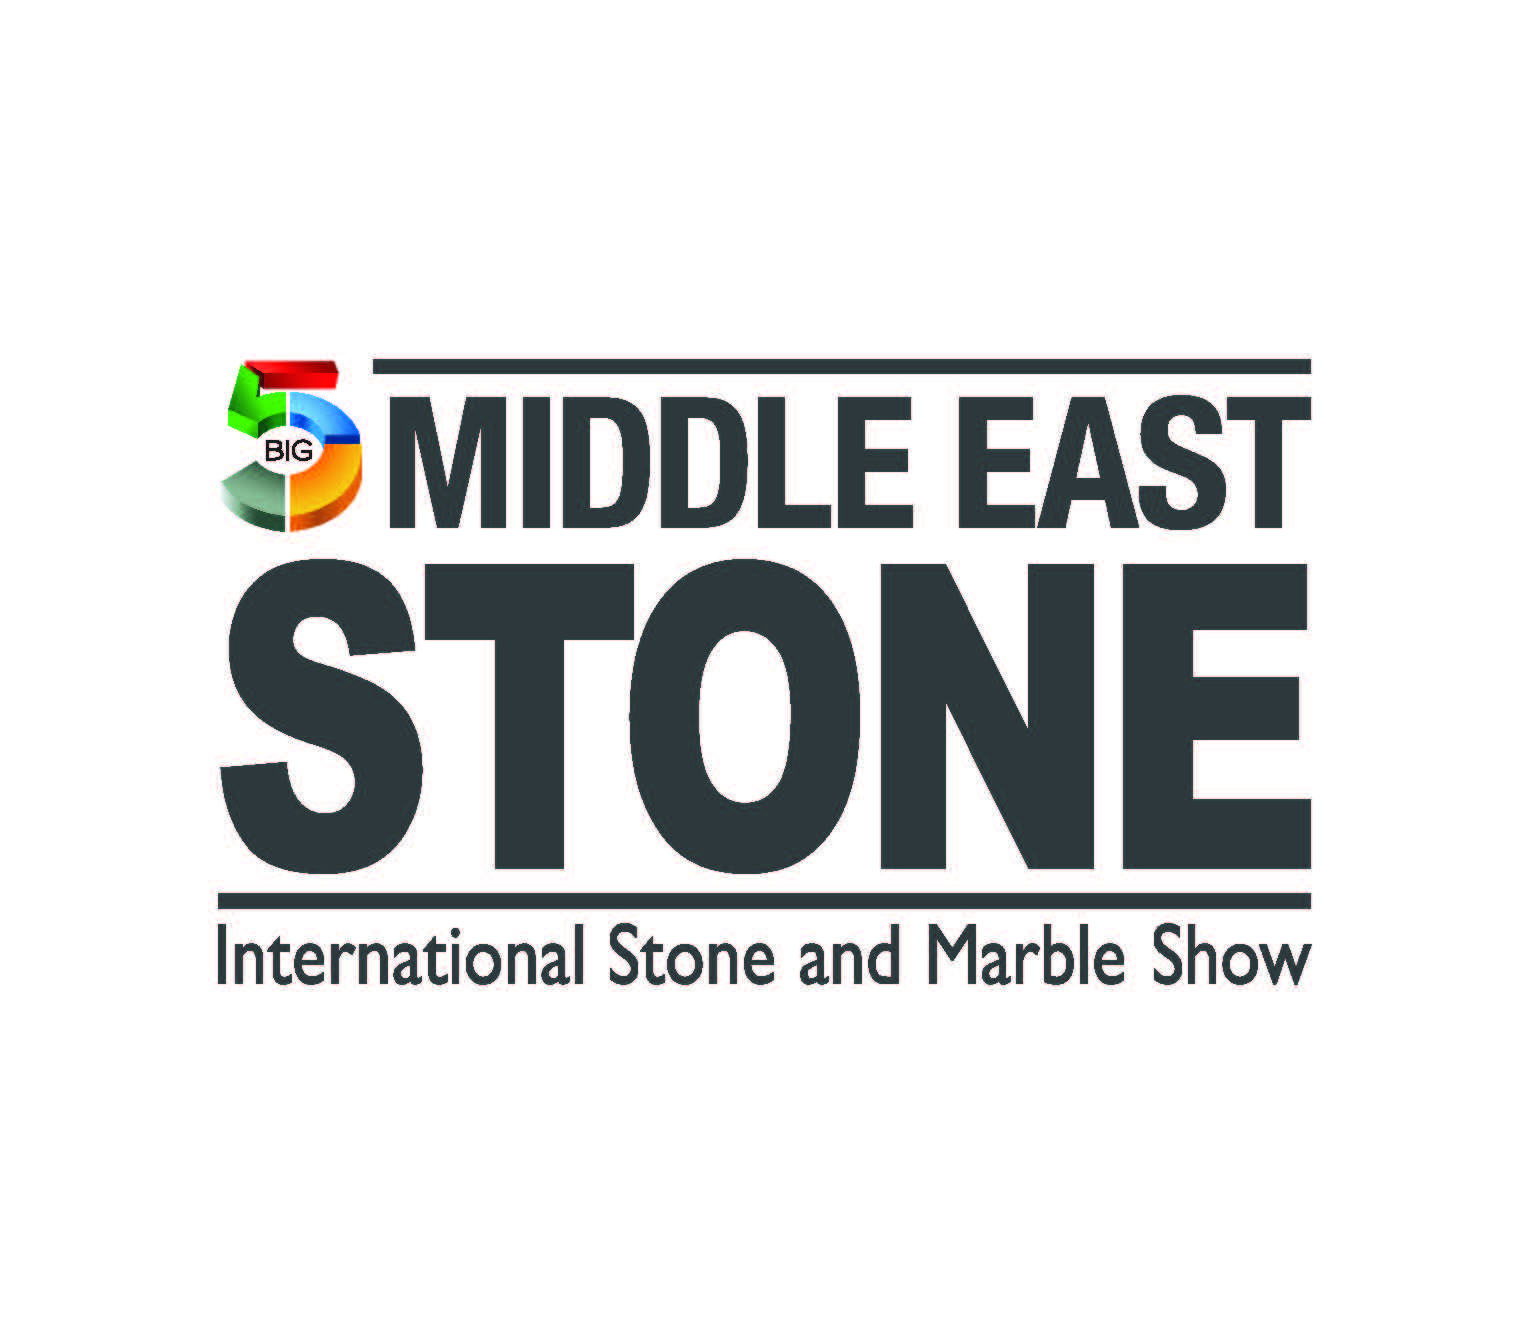 Middle East Stone